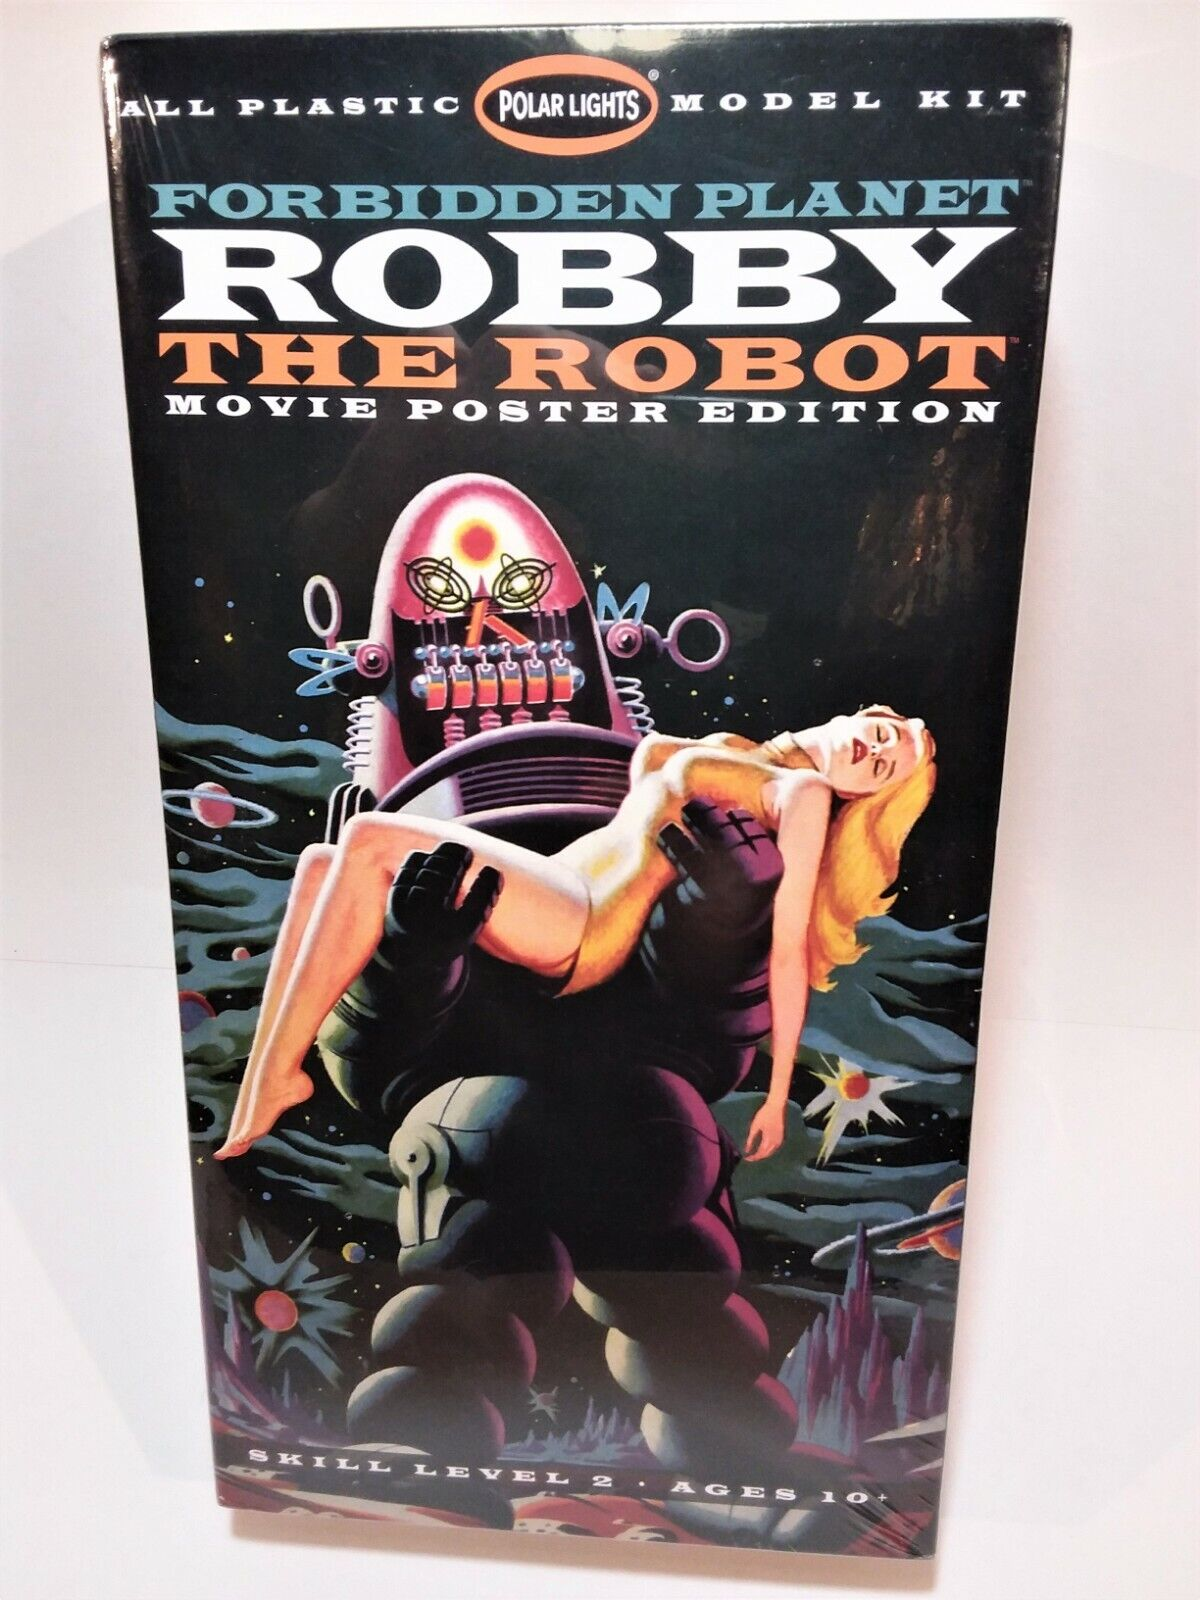 ROBBY THE ROBOT MOVIE POSTER EDITION